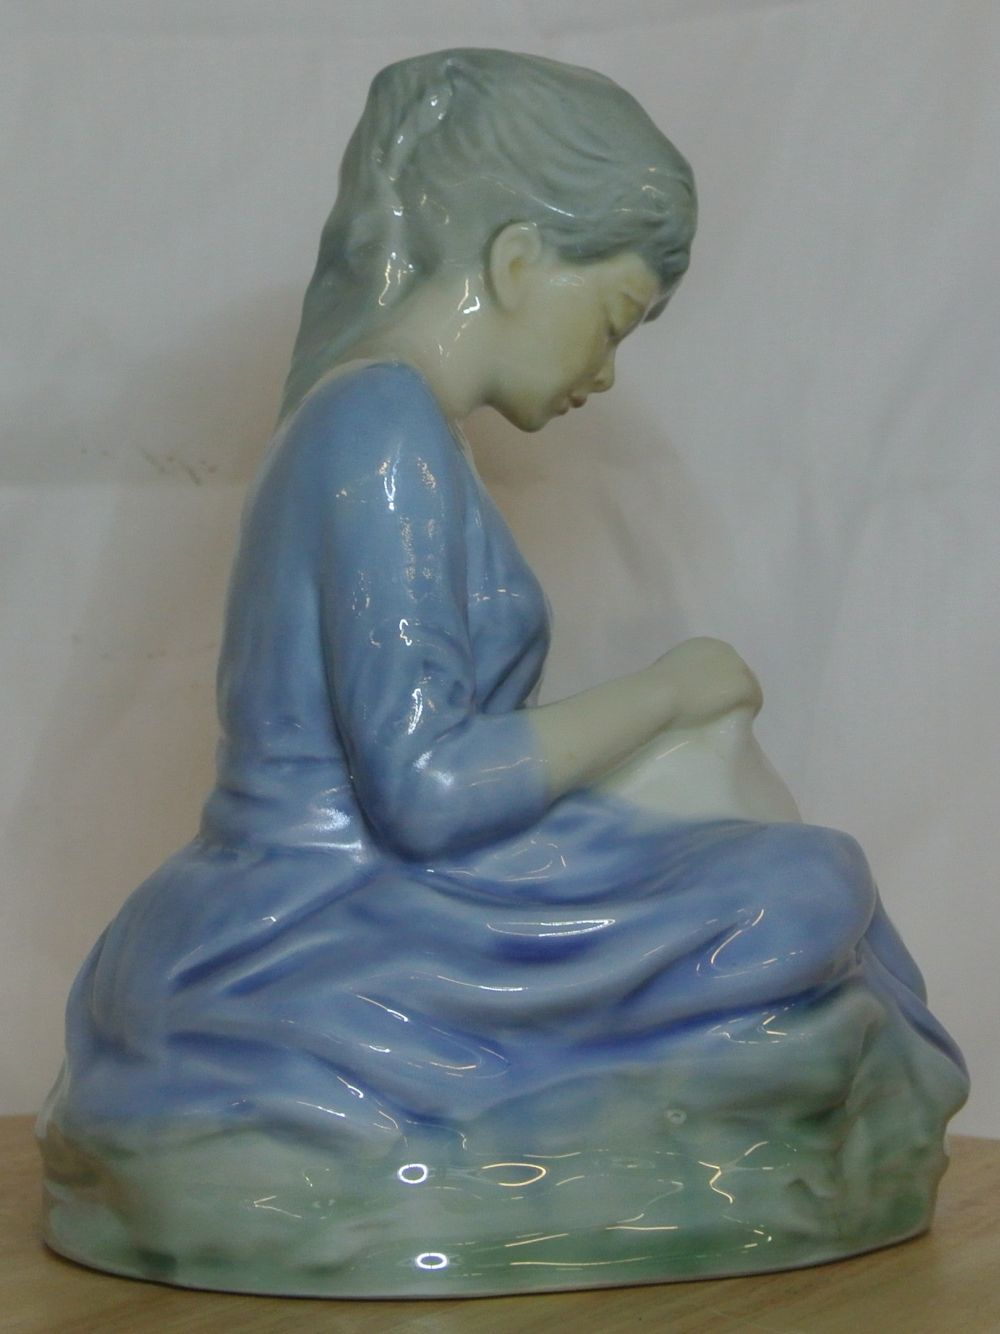 Lot 118: A rare Wade figure of a Lady sewing.